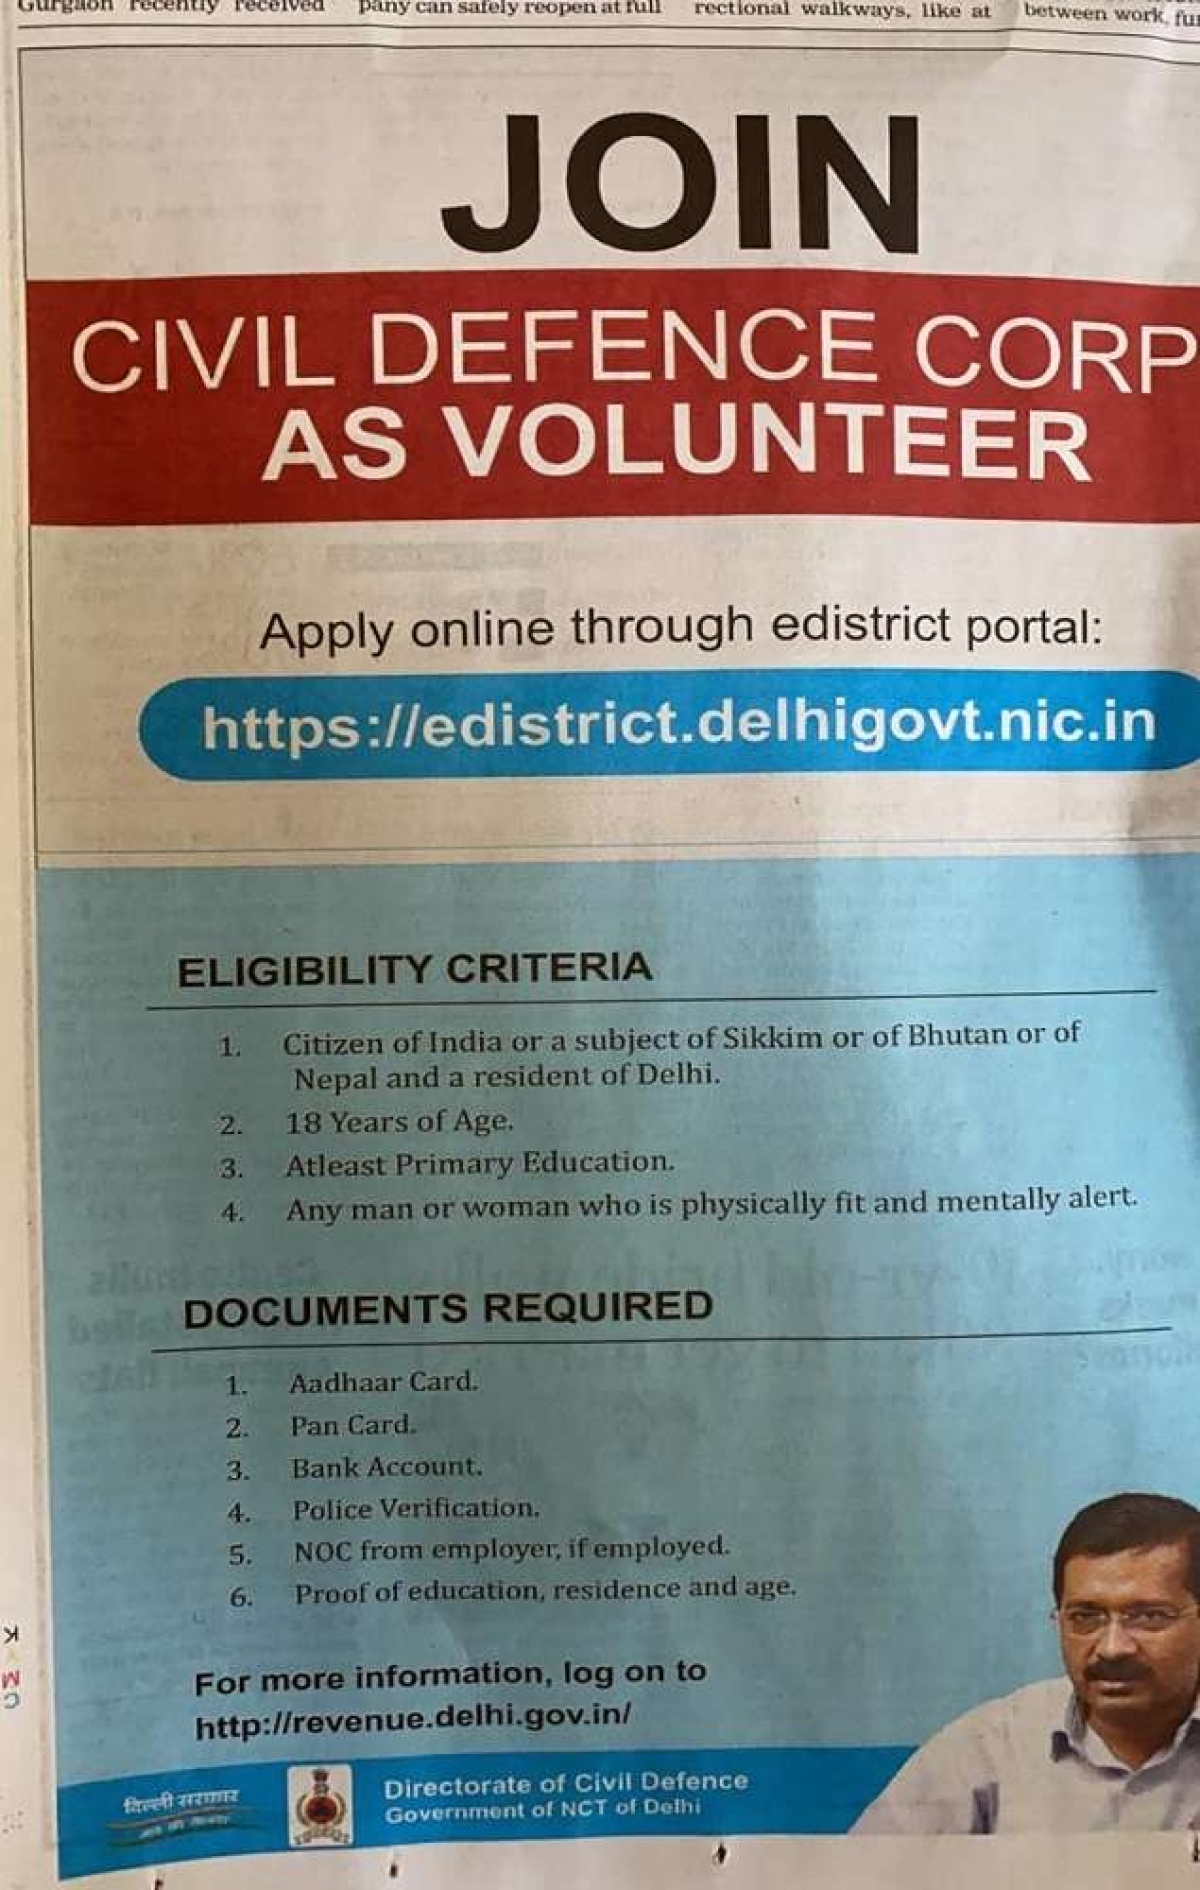 Sikkim asks Delhi government to withdraw 'offensive' ad